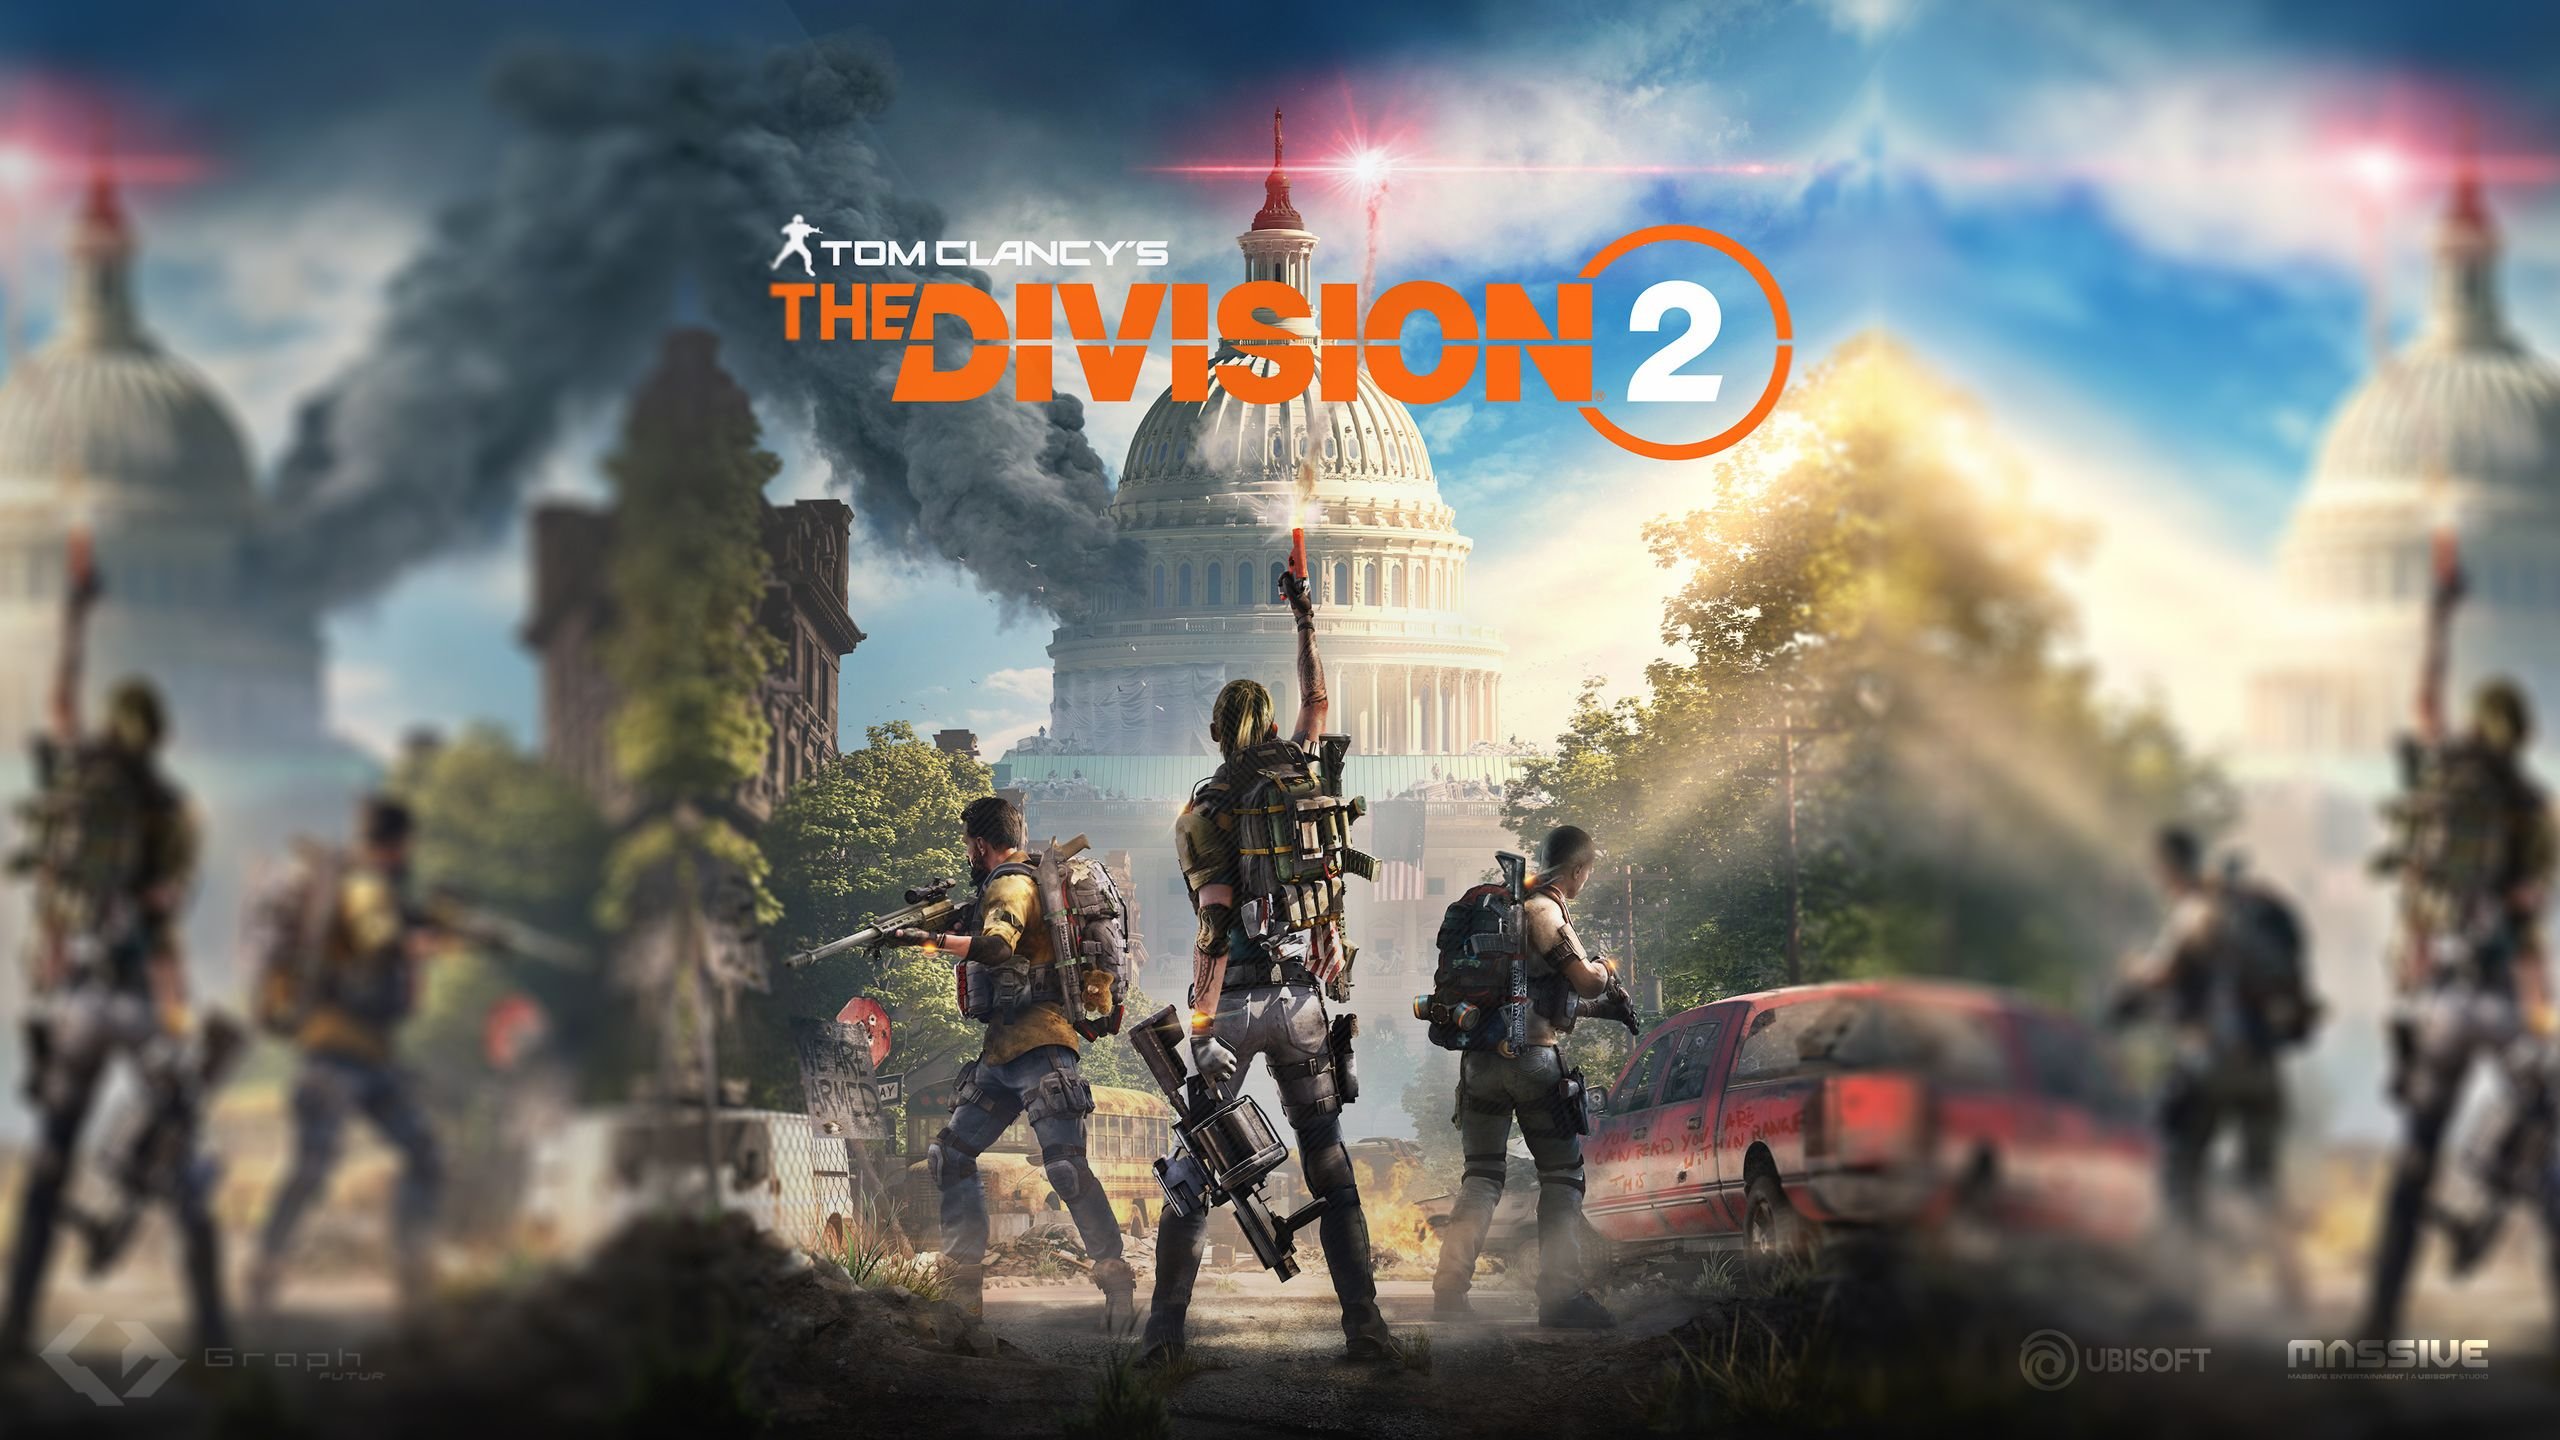 The Division 2 Wallpapers Top Free The Division 2